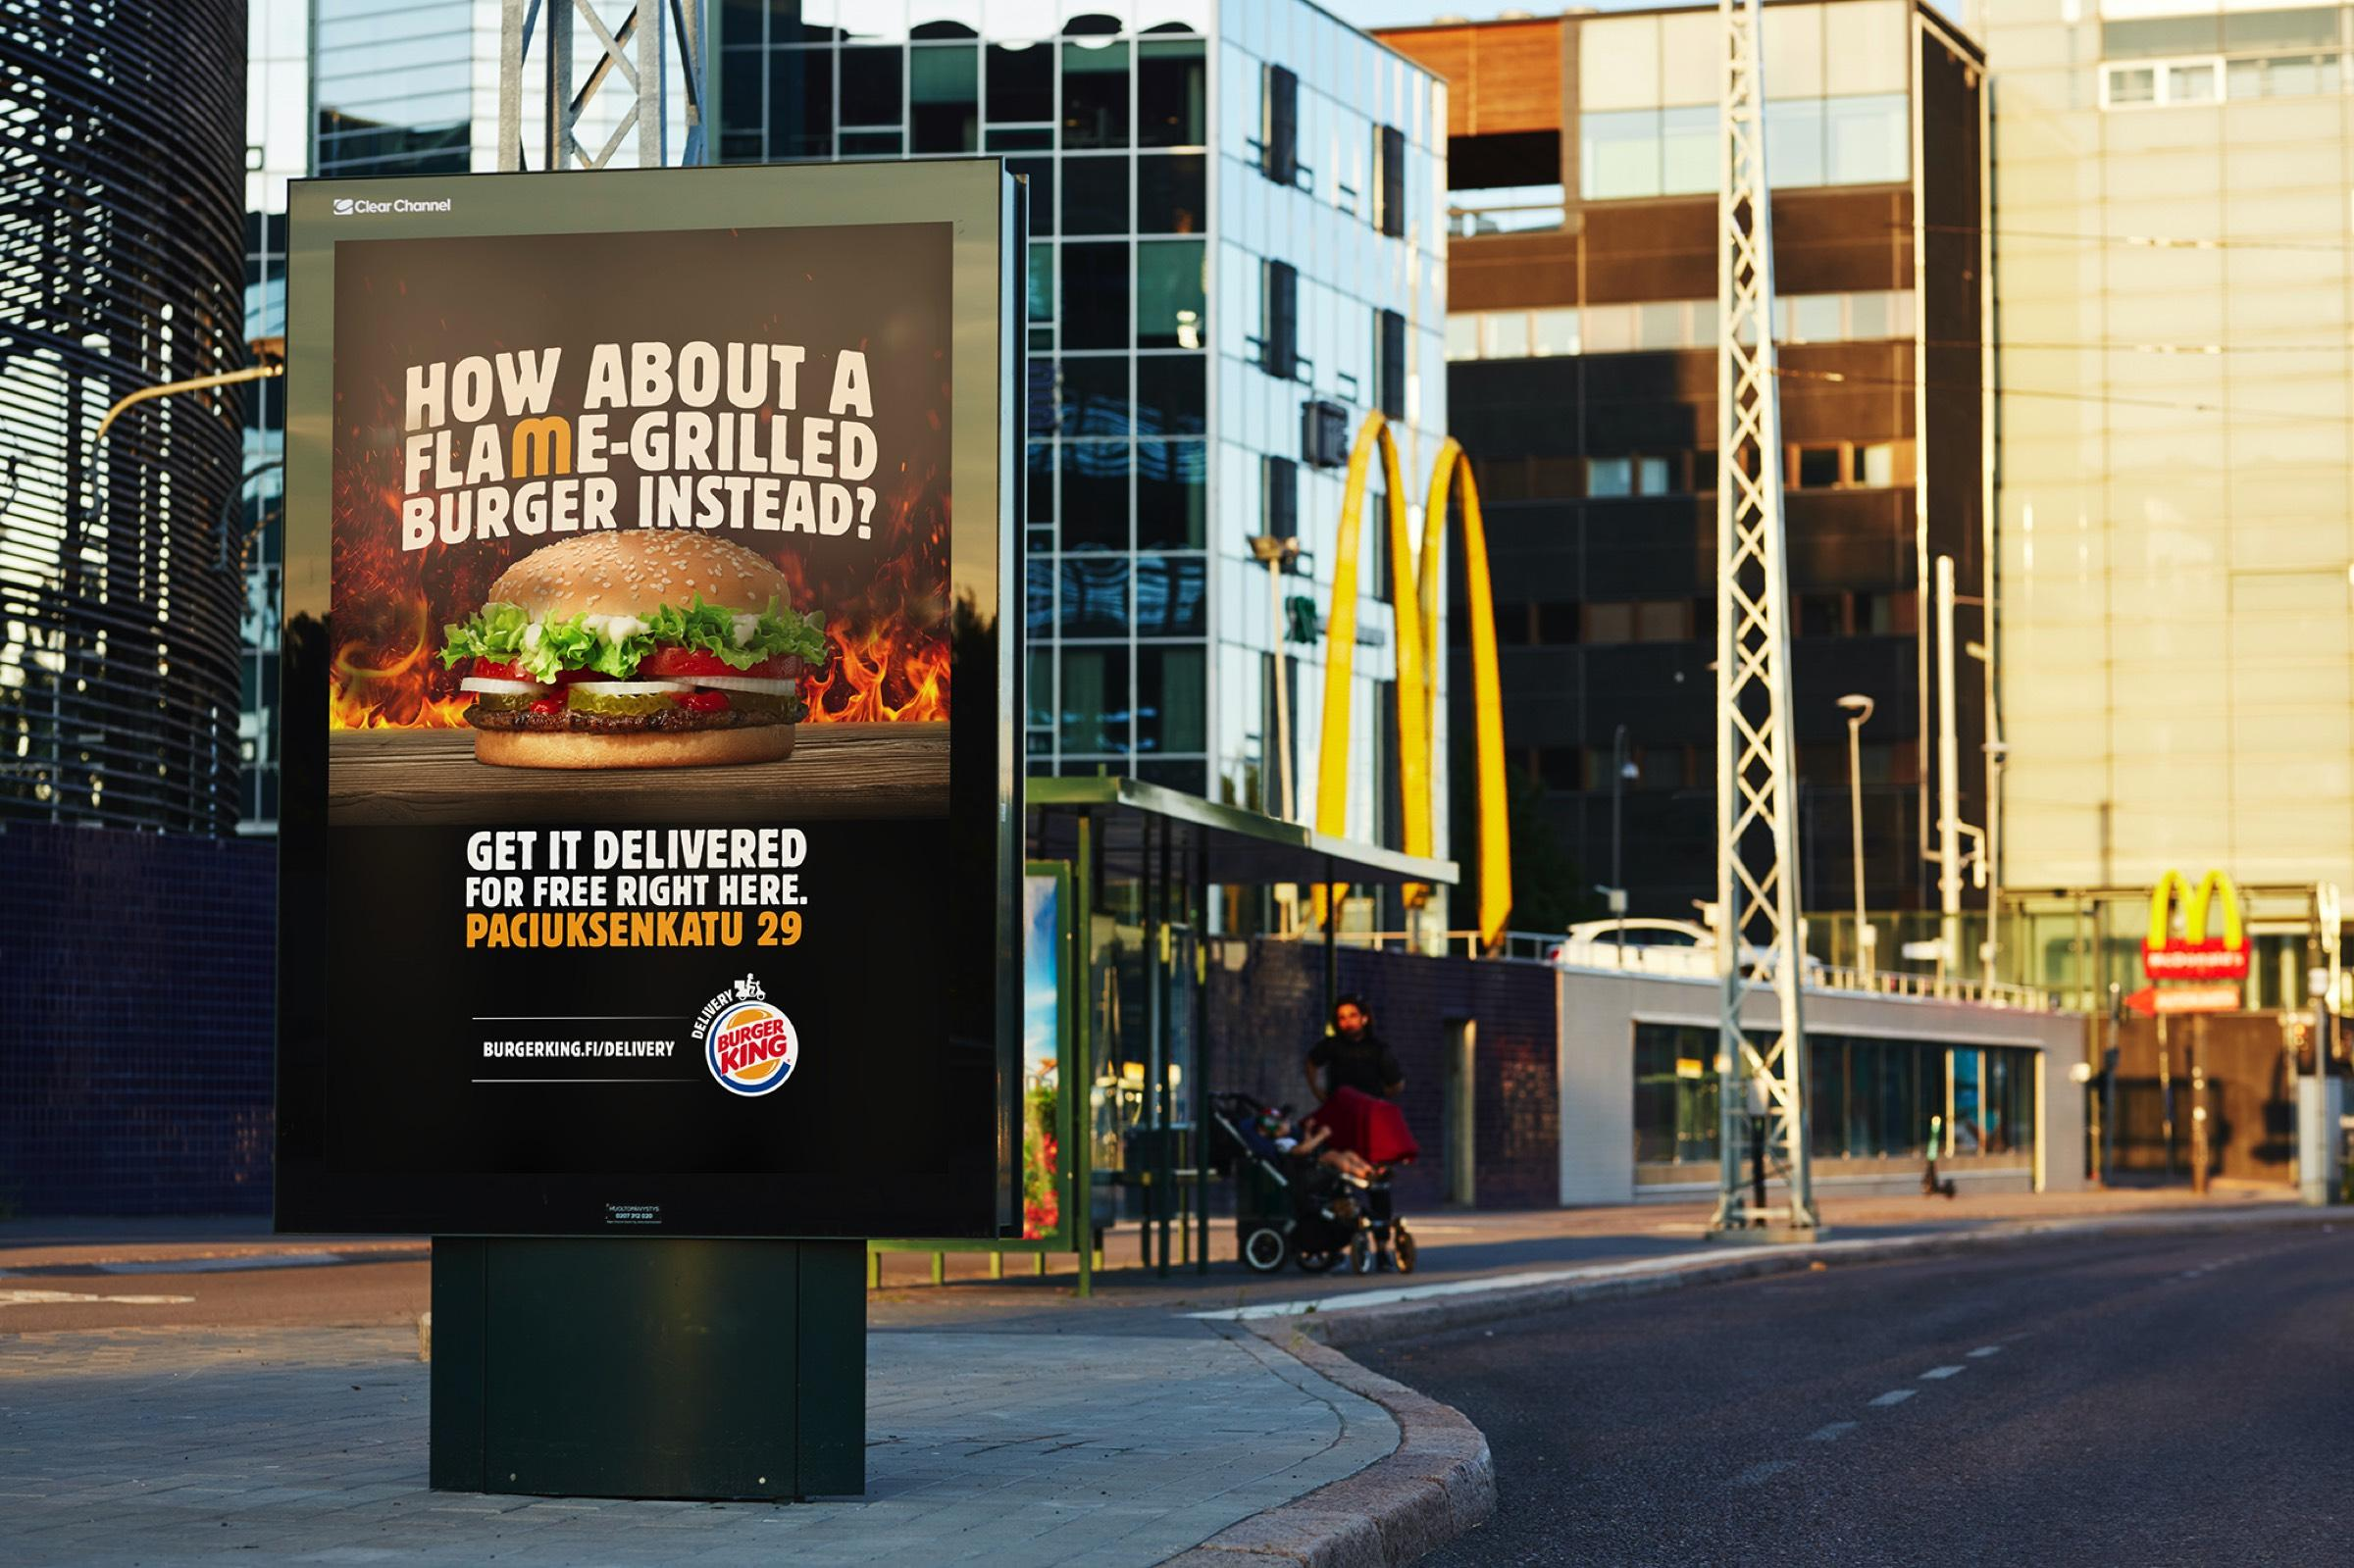 Burger King: A Whopper Instead